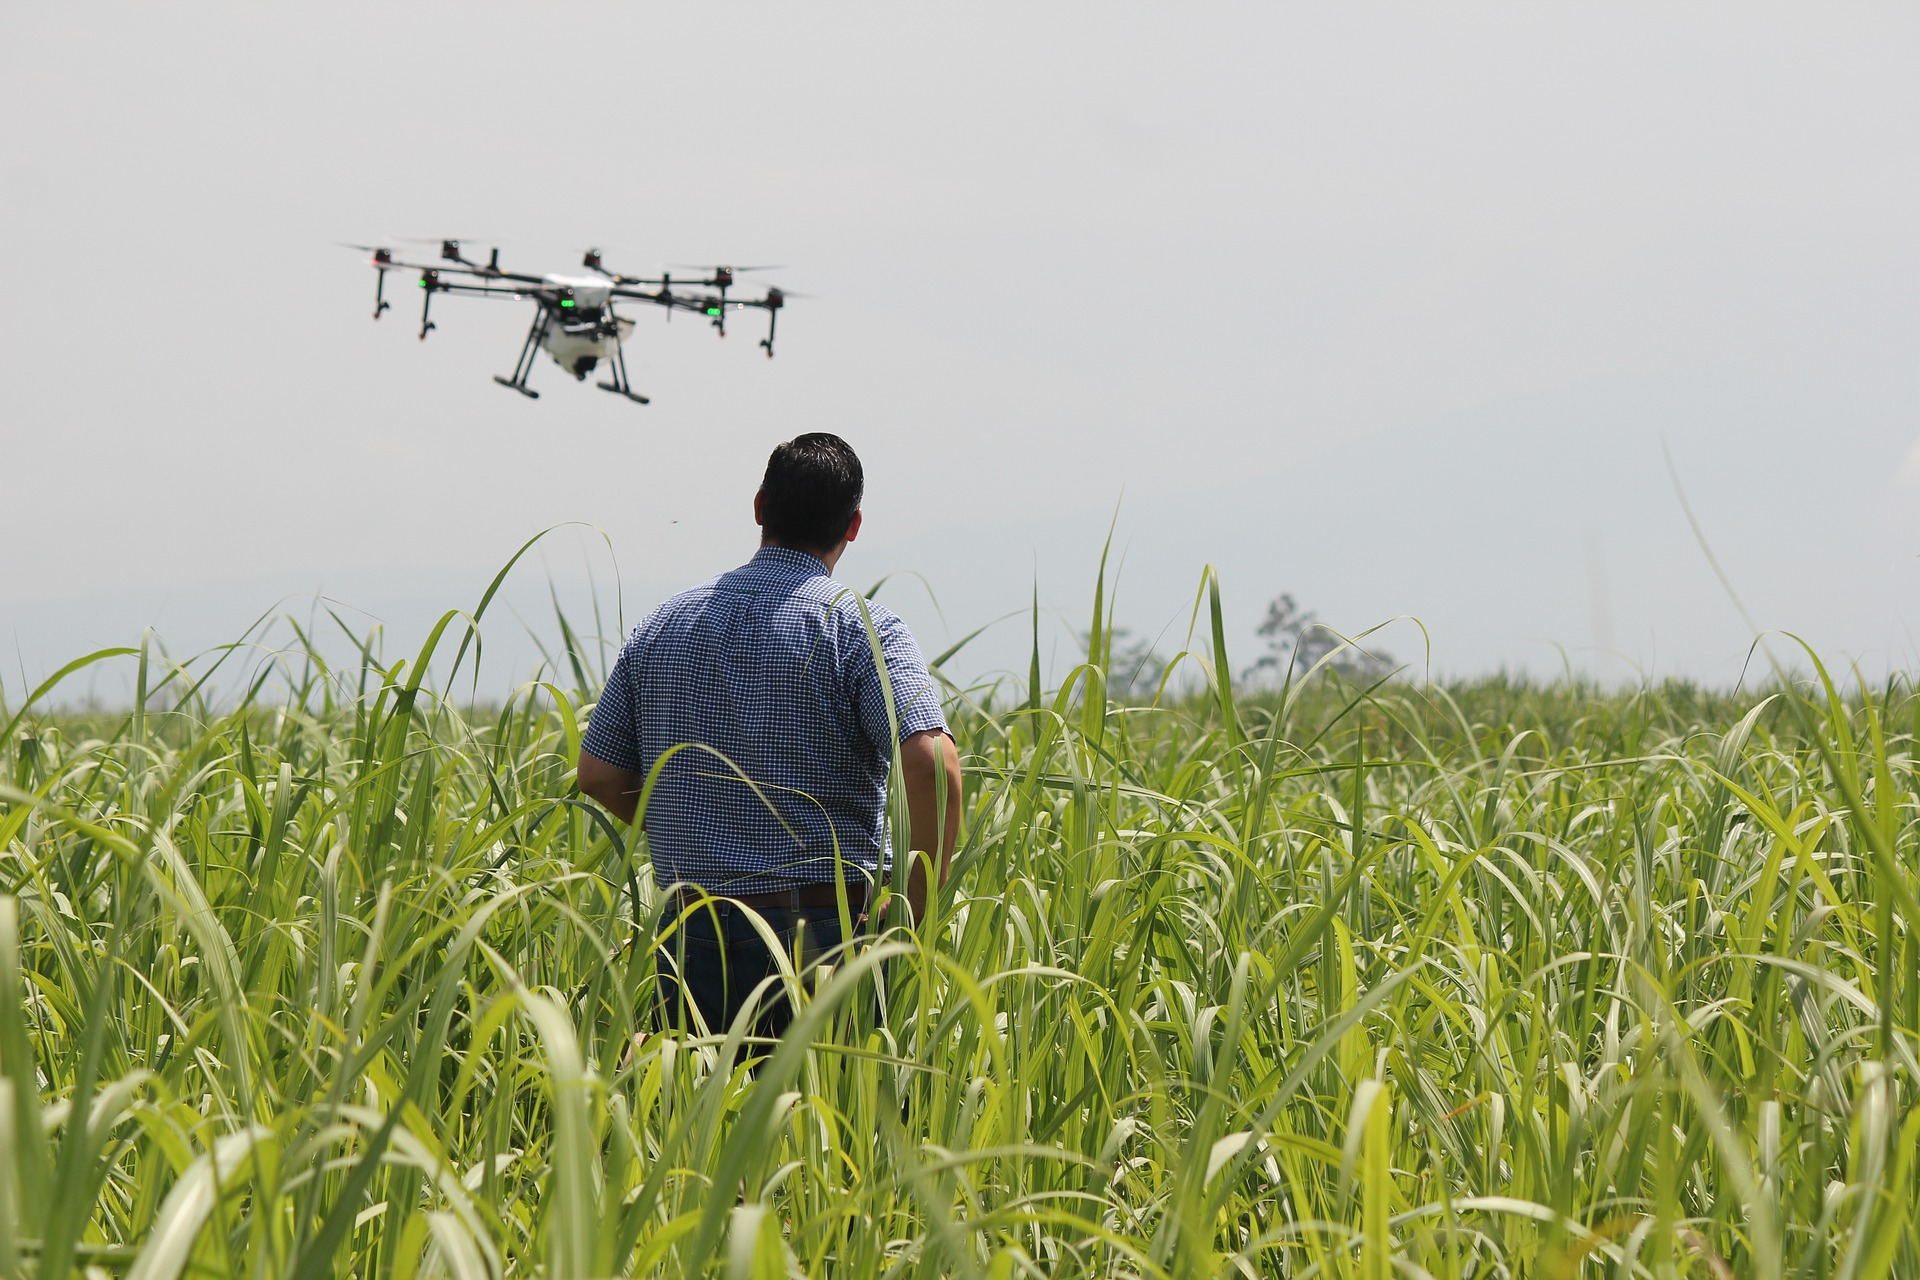 Drone pilots for agriculture in India